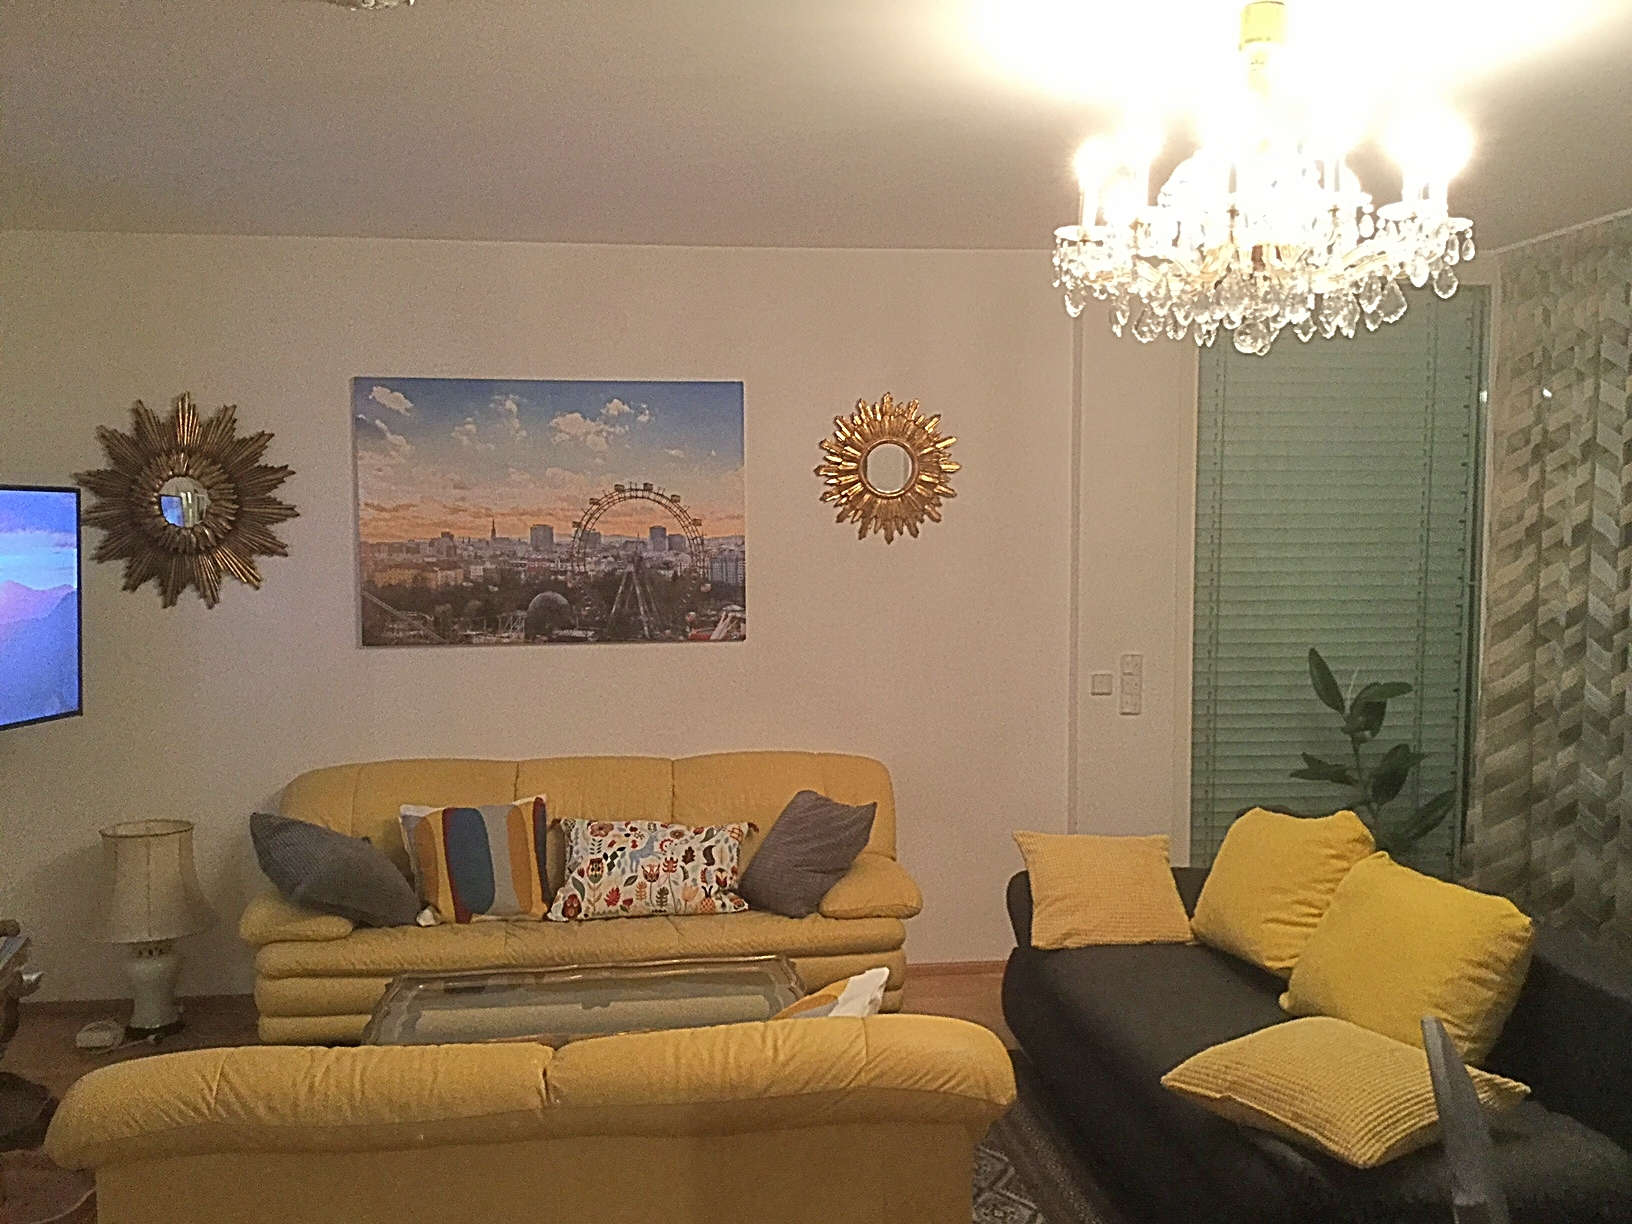 chic Vienna - 2 Bedroom Vista Apartment luxury holiday home and vacation rental